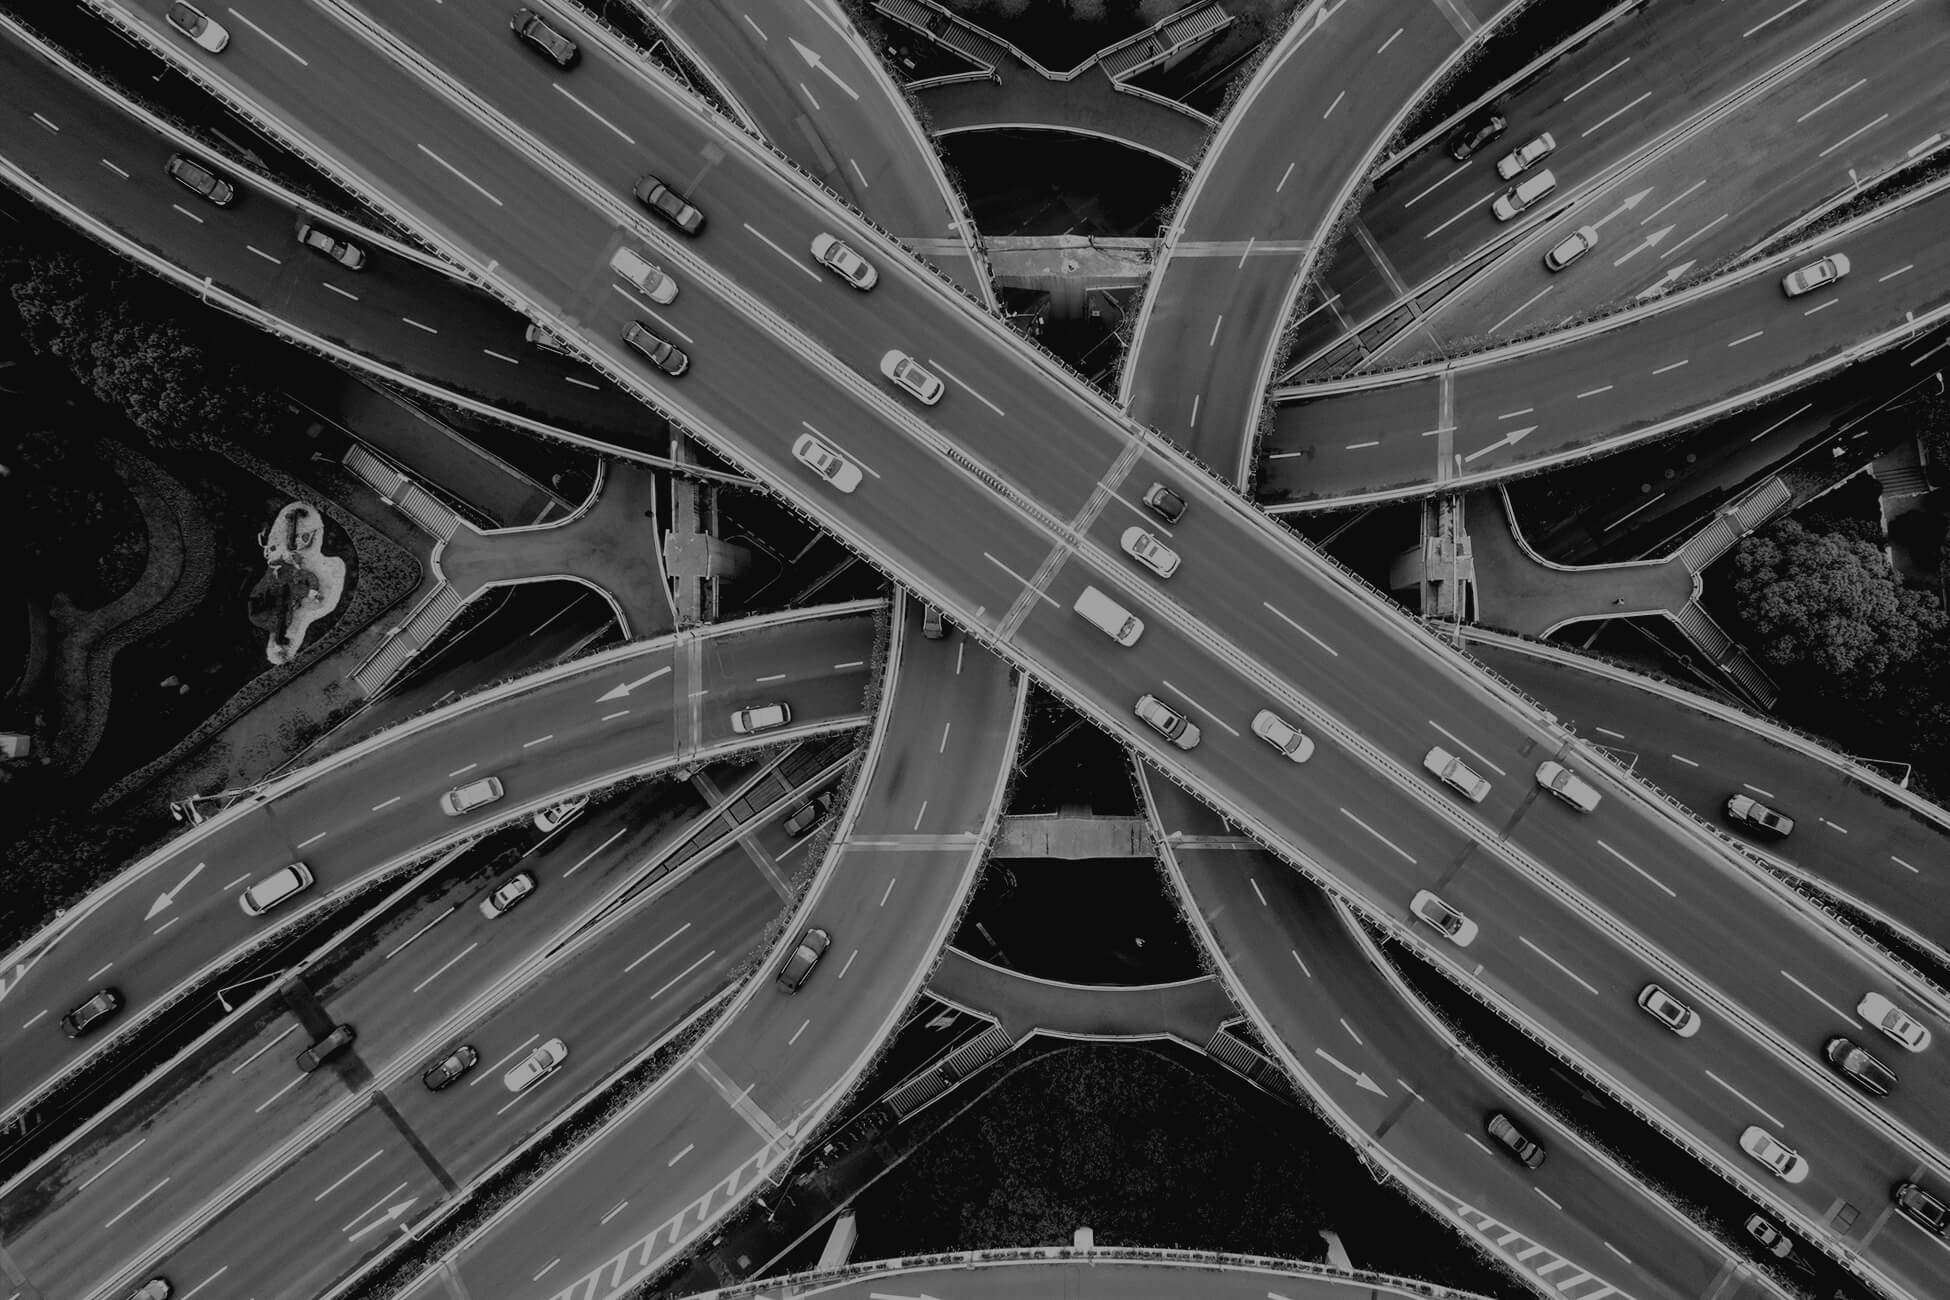 Busy roads overlapping